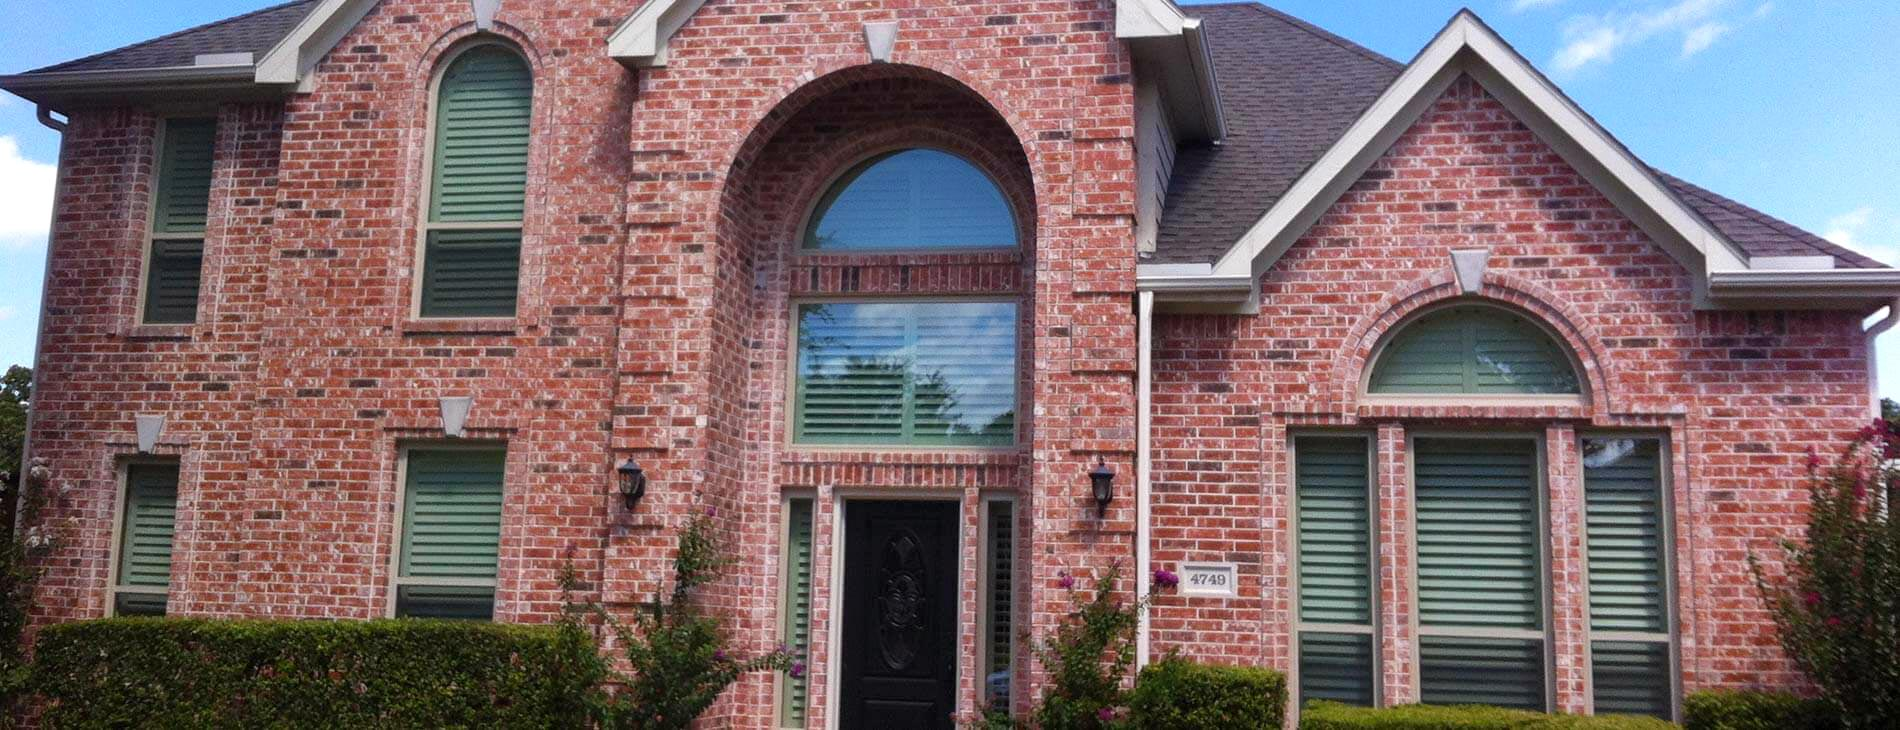 Home Window Replacement in Carrollton, Coppell, Grapevine, Highland Village, Lewisville, and Plano